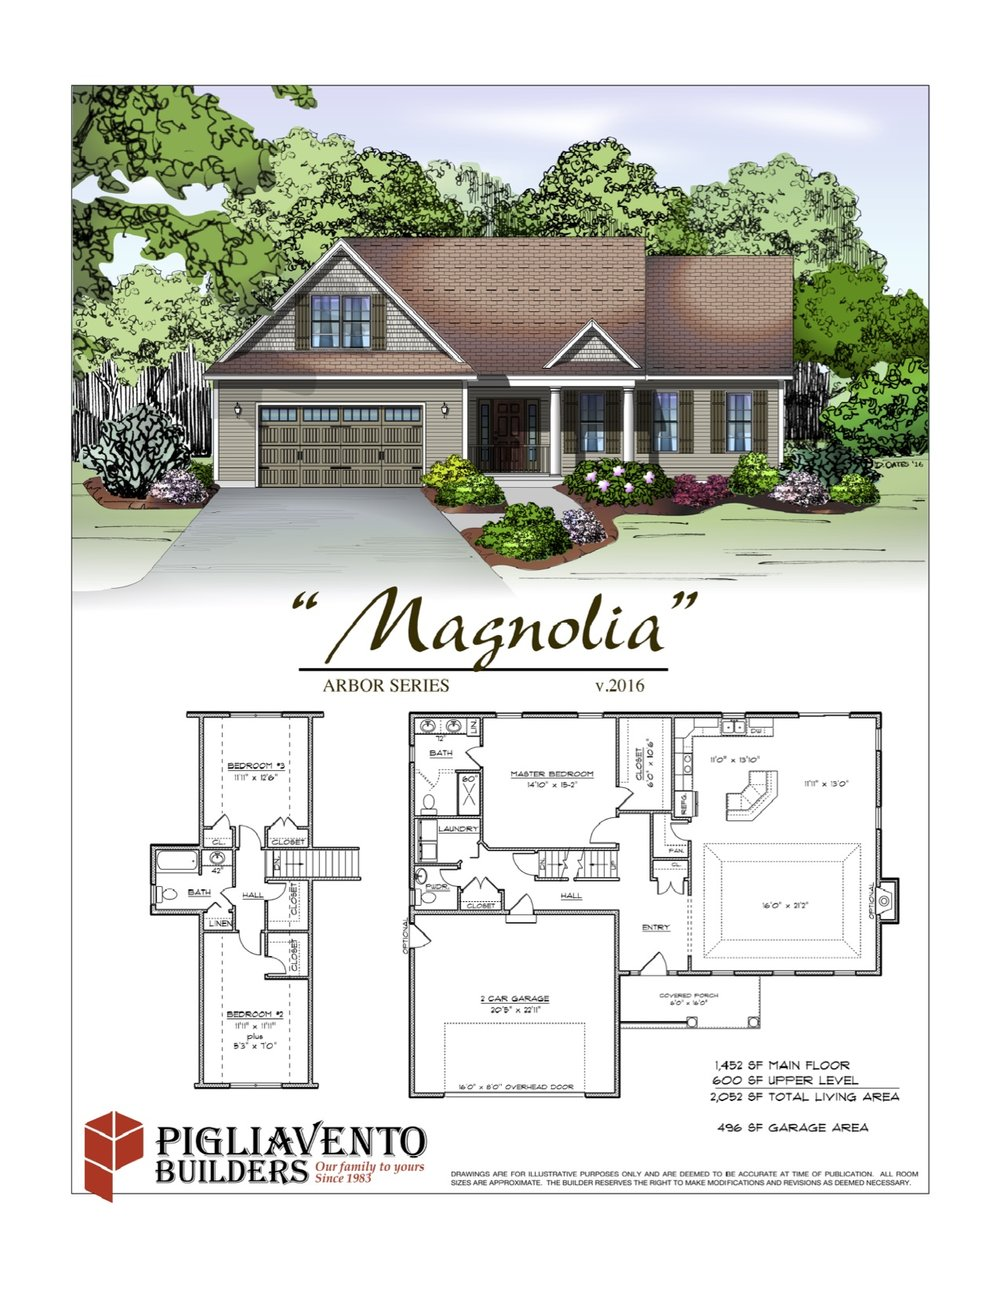 Magnolia v2016 Final Brochure copy.jpg